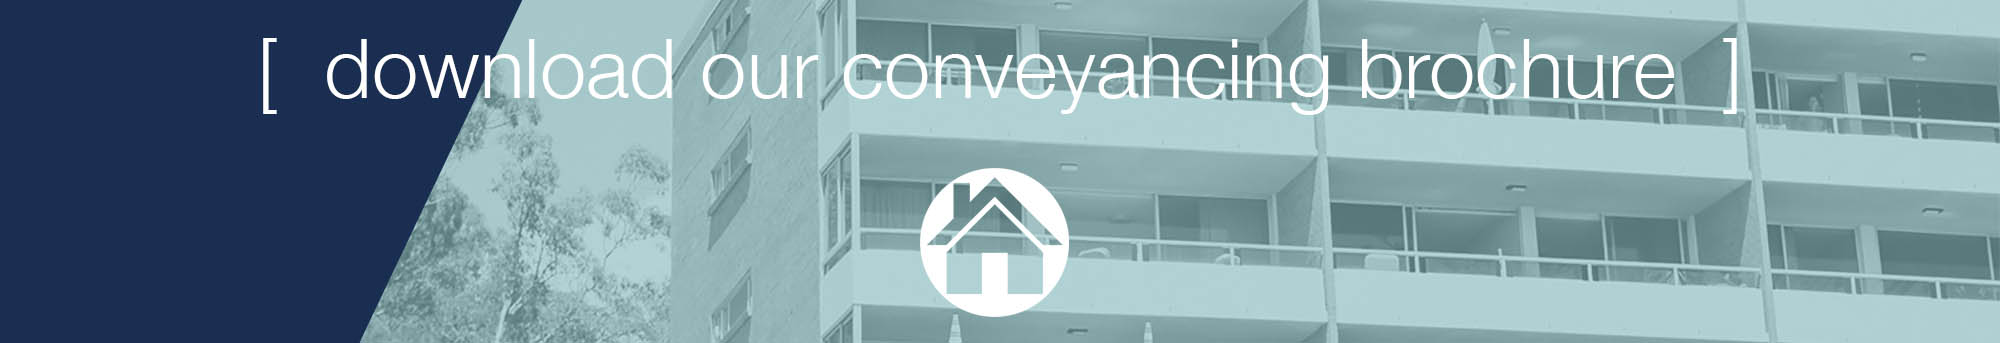 Download our conveyancing brochure to learn more about how our property law solicitors can assist you to buy or sell property on the Gold Coast, or in Brisbane.